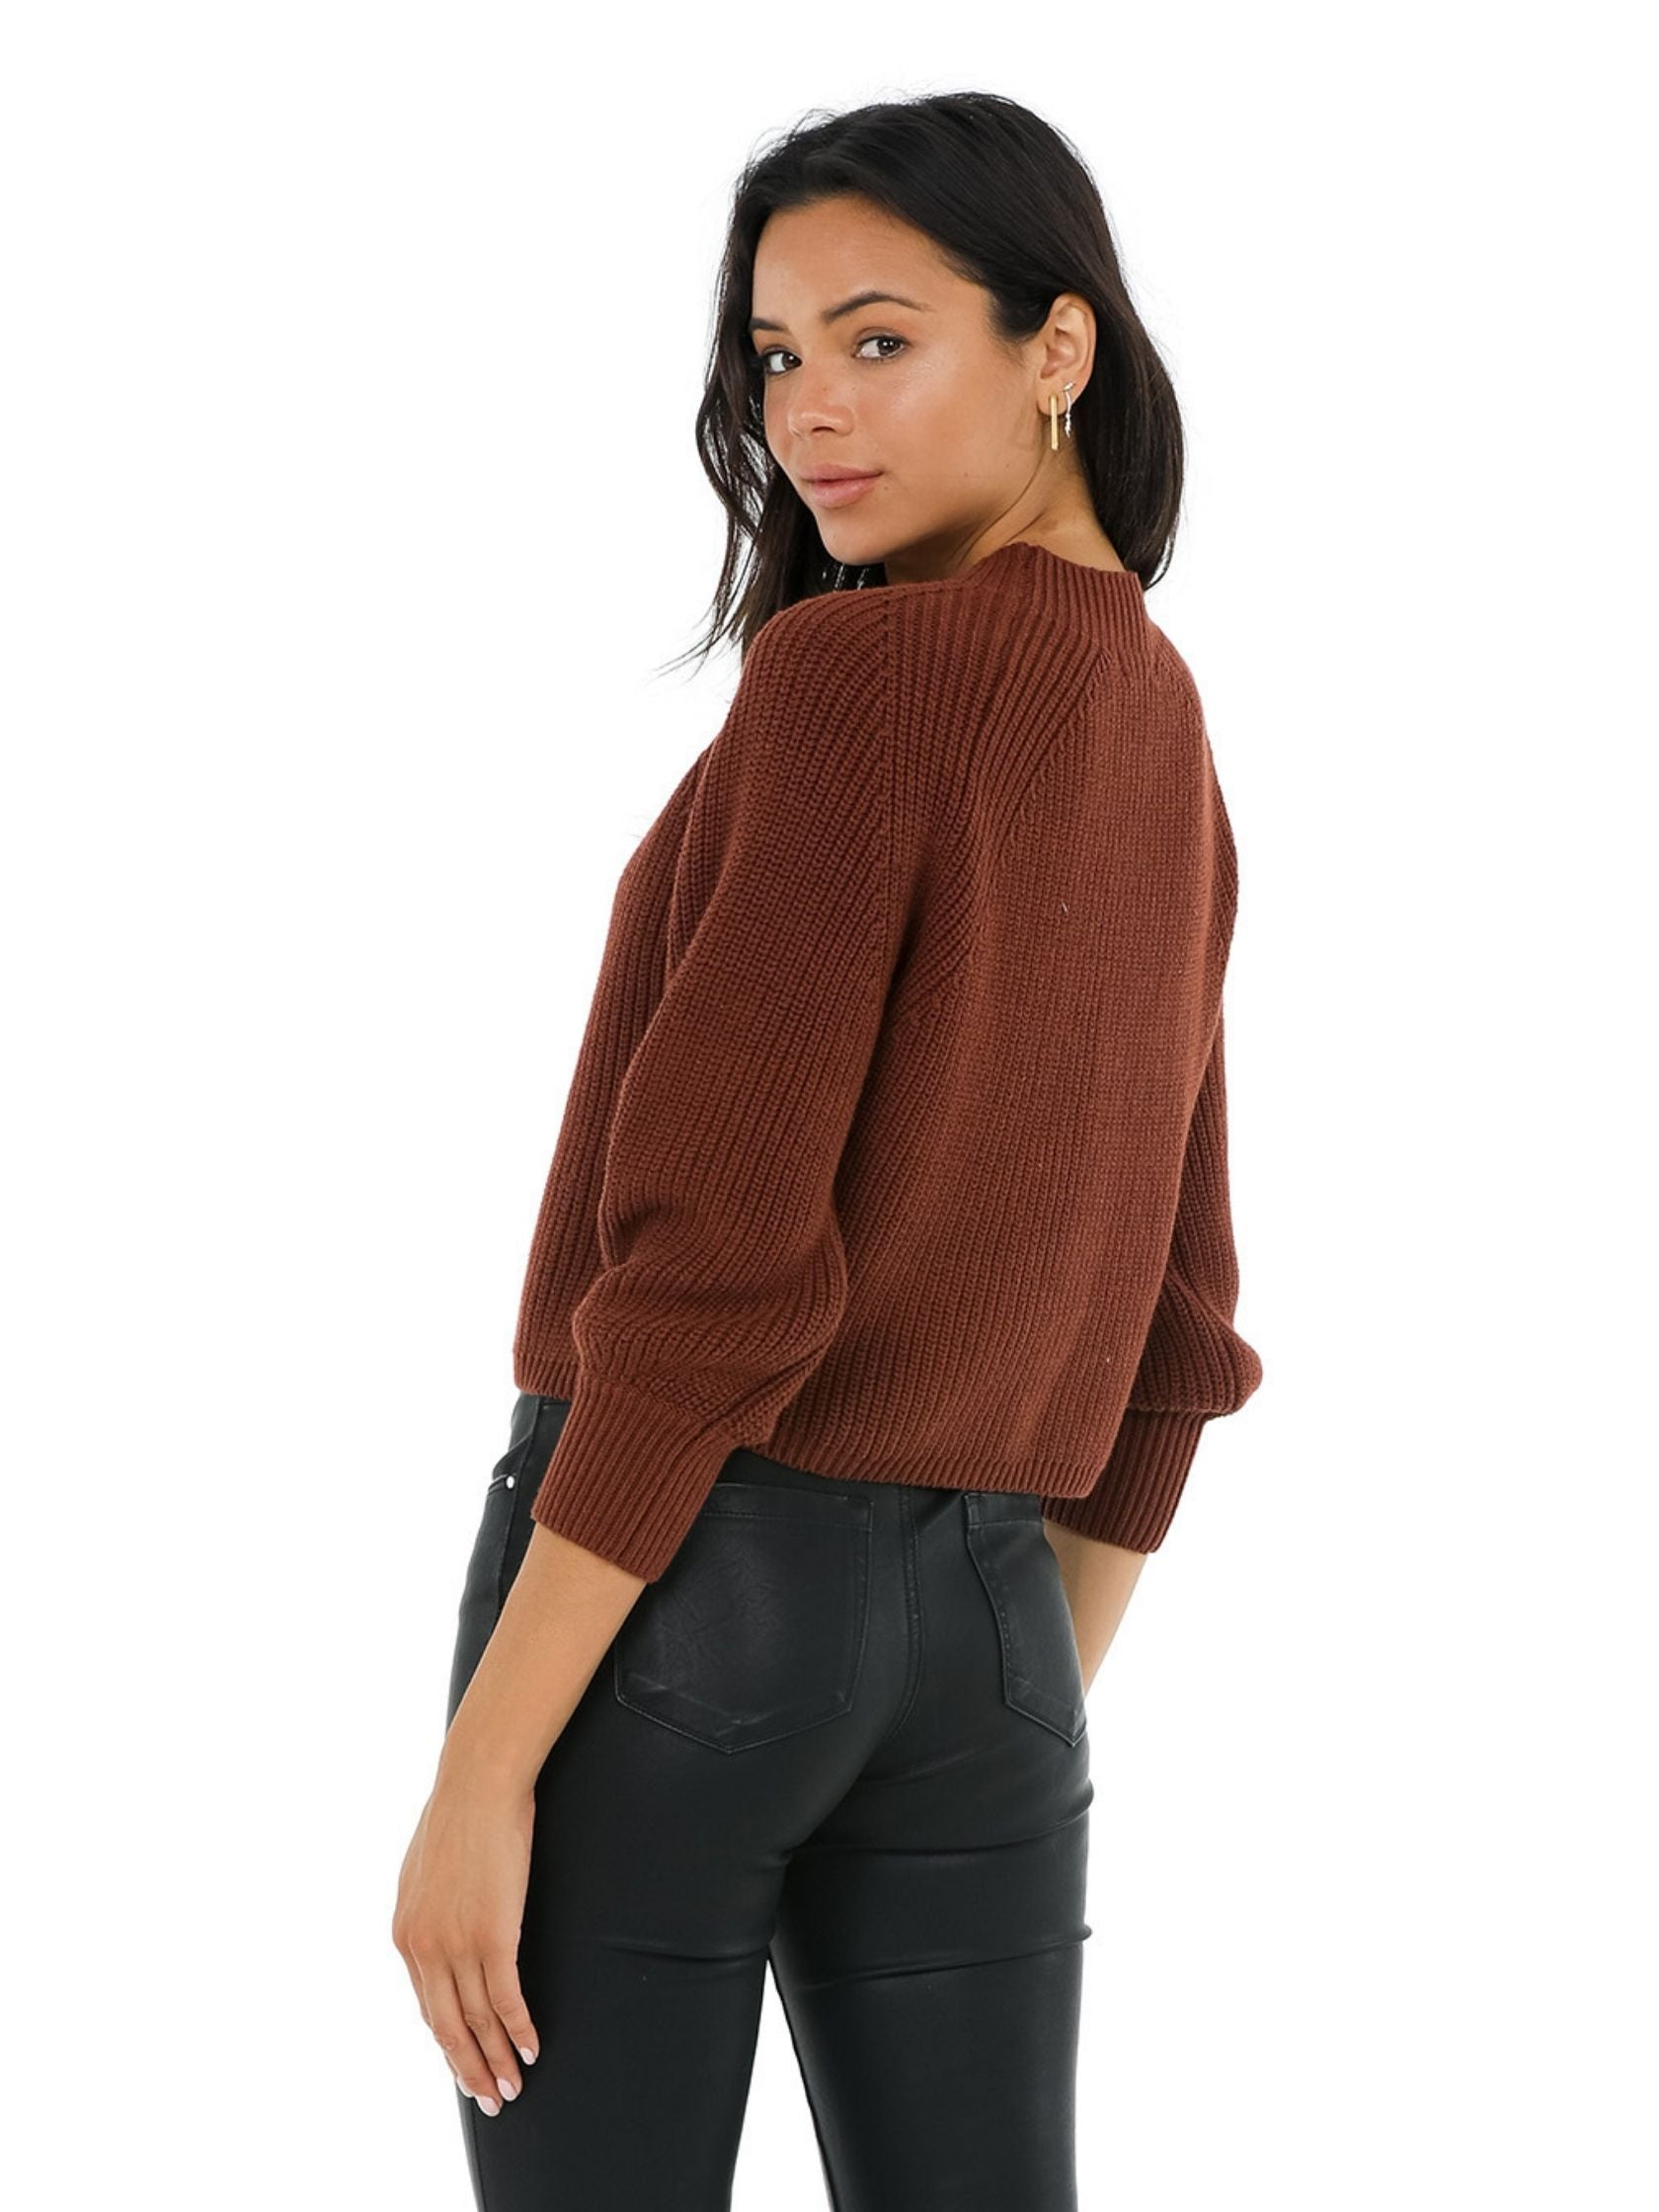 Women outfit in a sweater rental from 525 called Balloon Sleeve Cropped Sweater